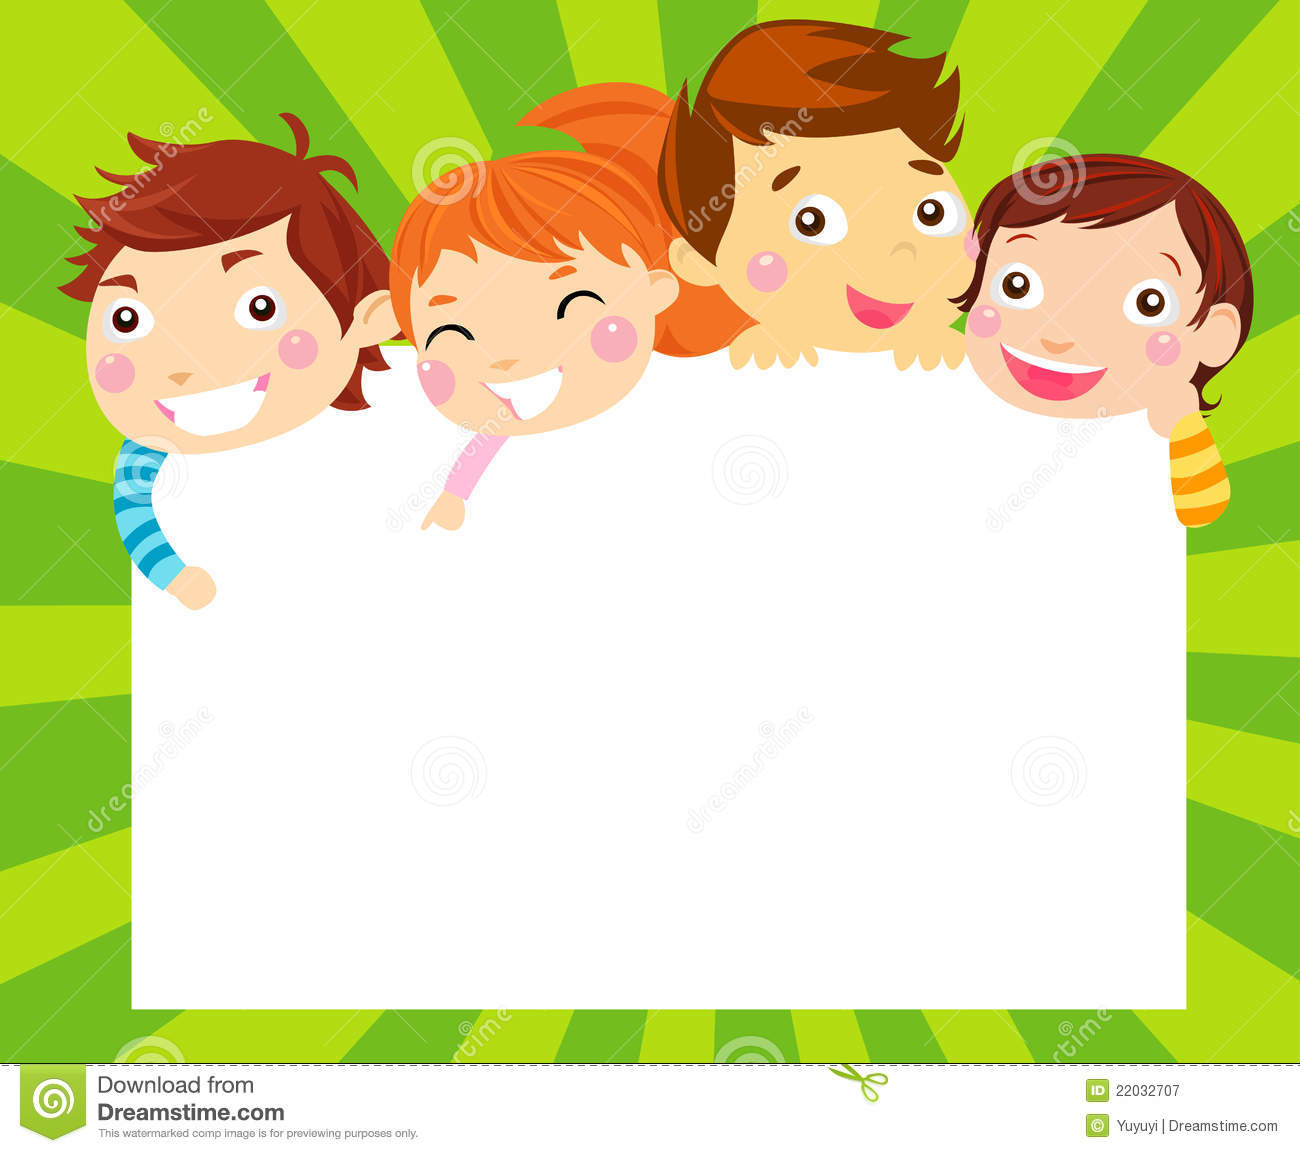 Boys And Girls And Frame Illustration 22032707 Megapixl